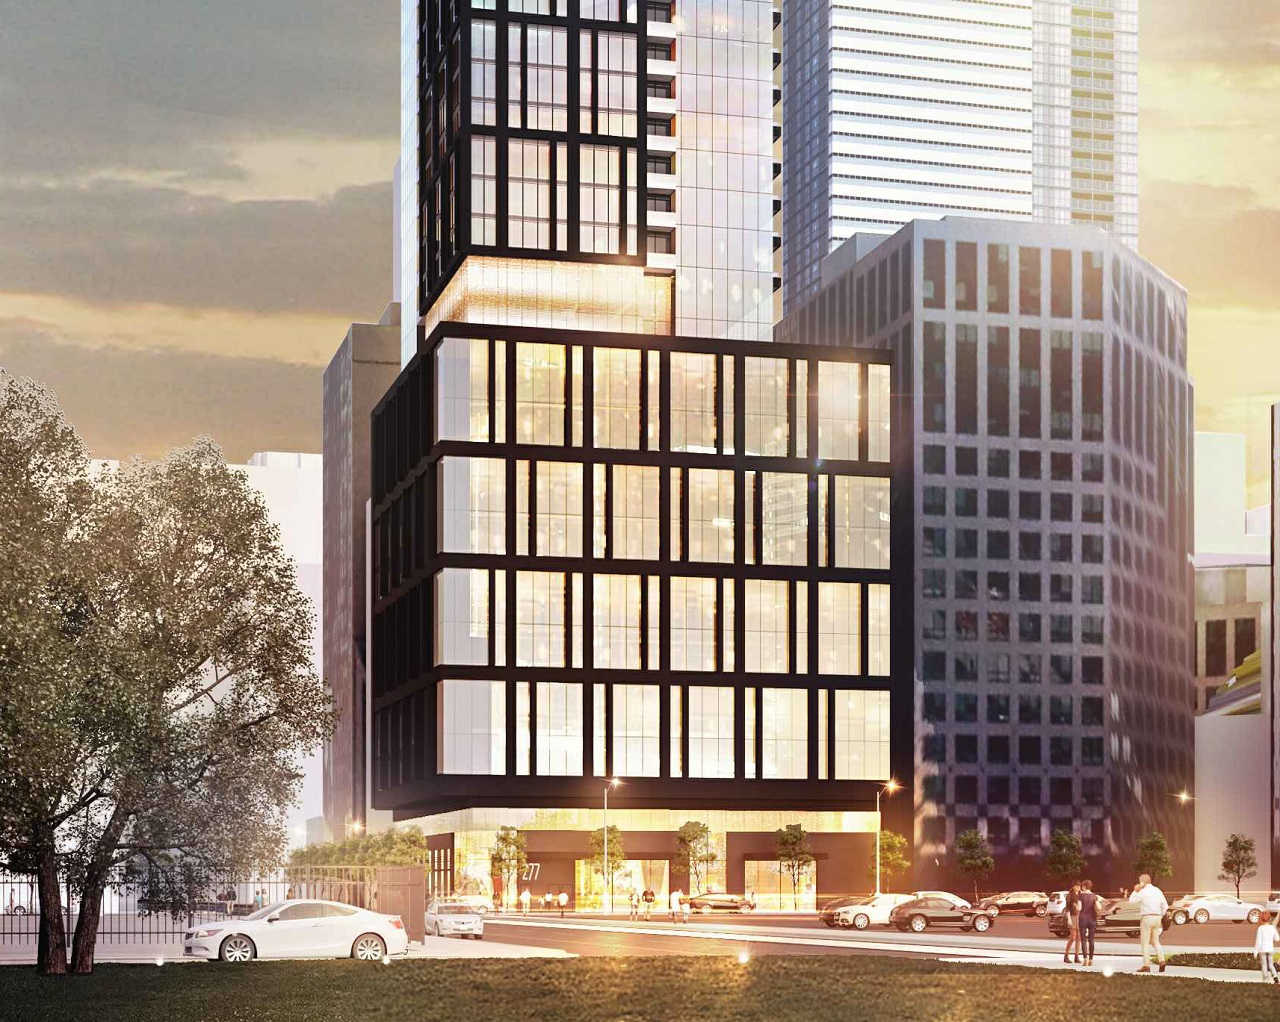 277 Wellington West, Toronto, designed by IBI Group for Reserve Properties